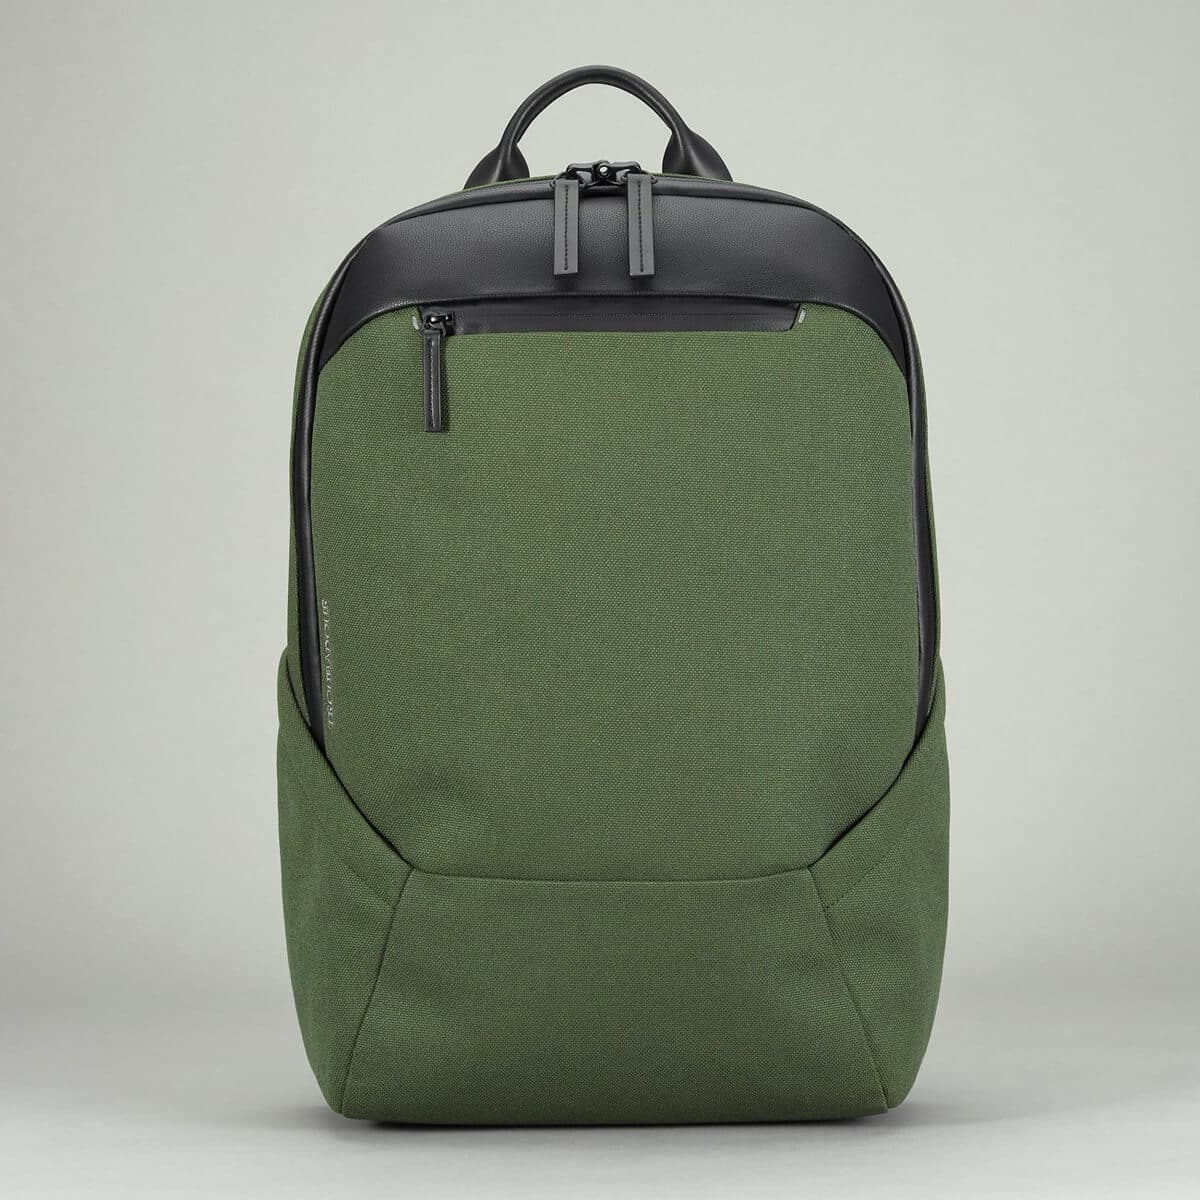 Troubadour - APEX BACKPACK EXPLORER